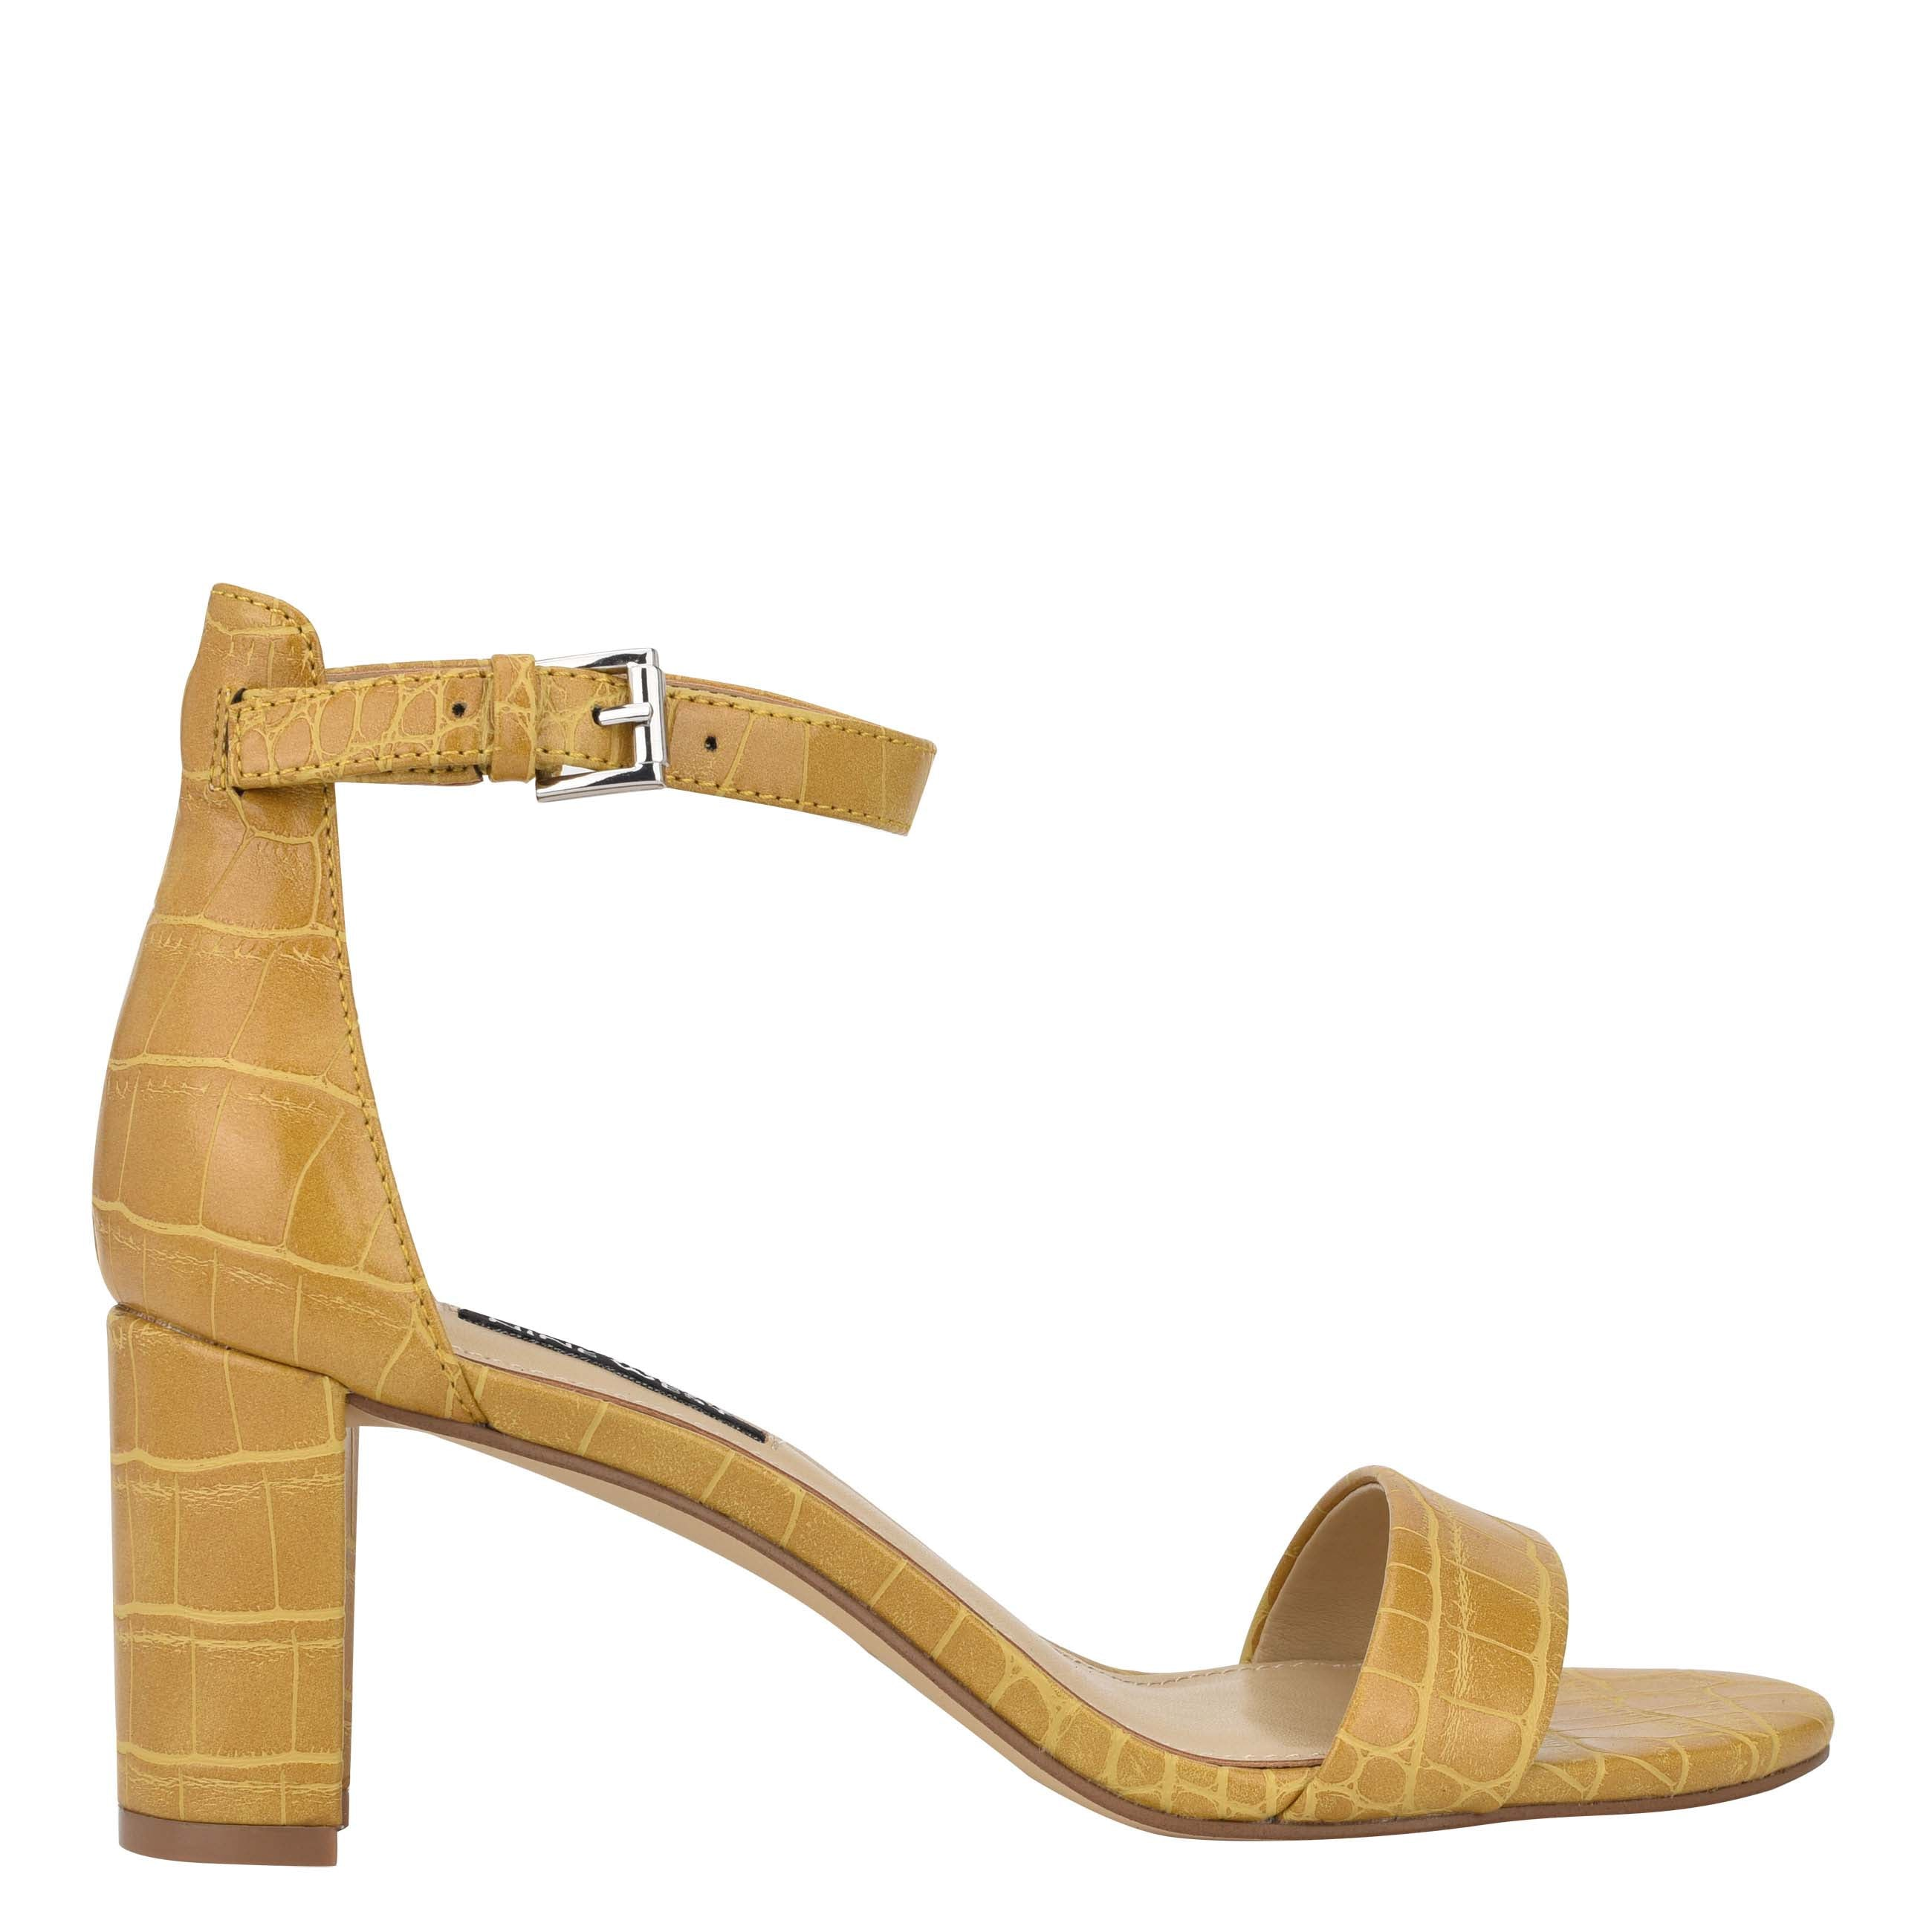 NINEWEST Pruce Ankle Strap Block Heel Sandals